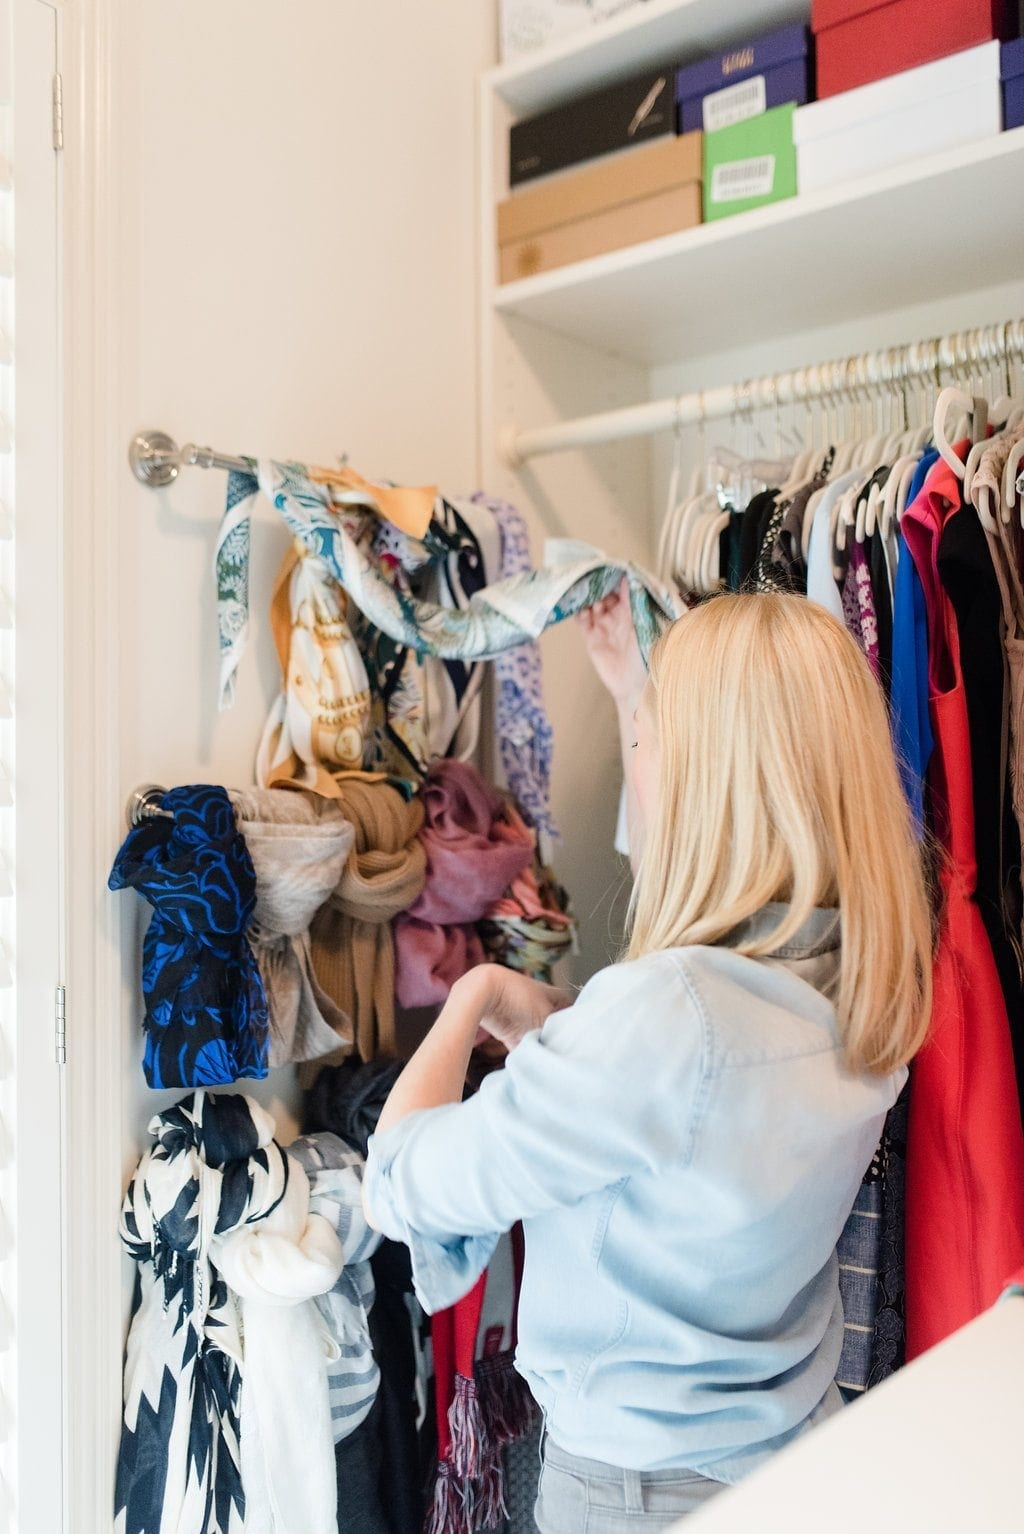 How color coding clothes will help your closet look cleaner.